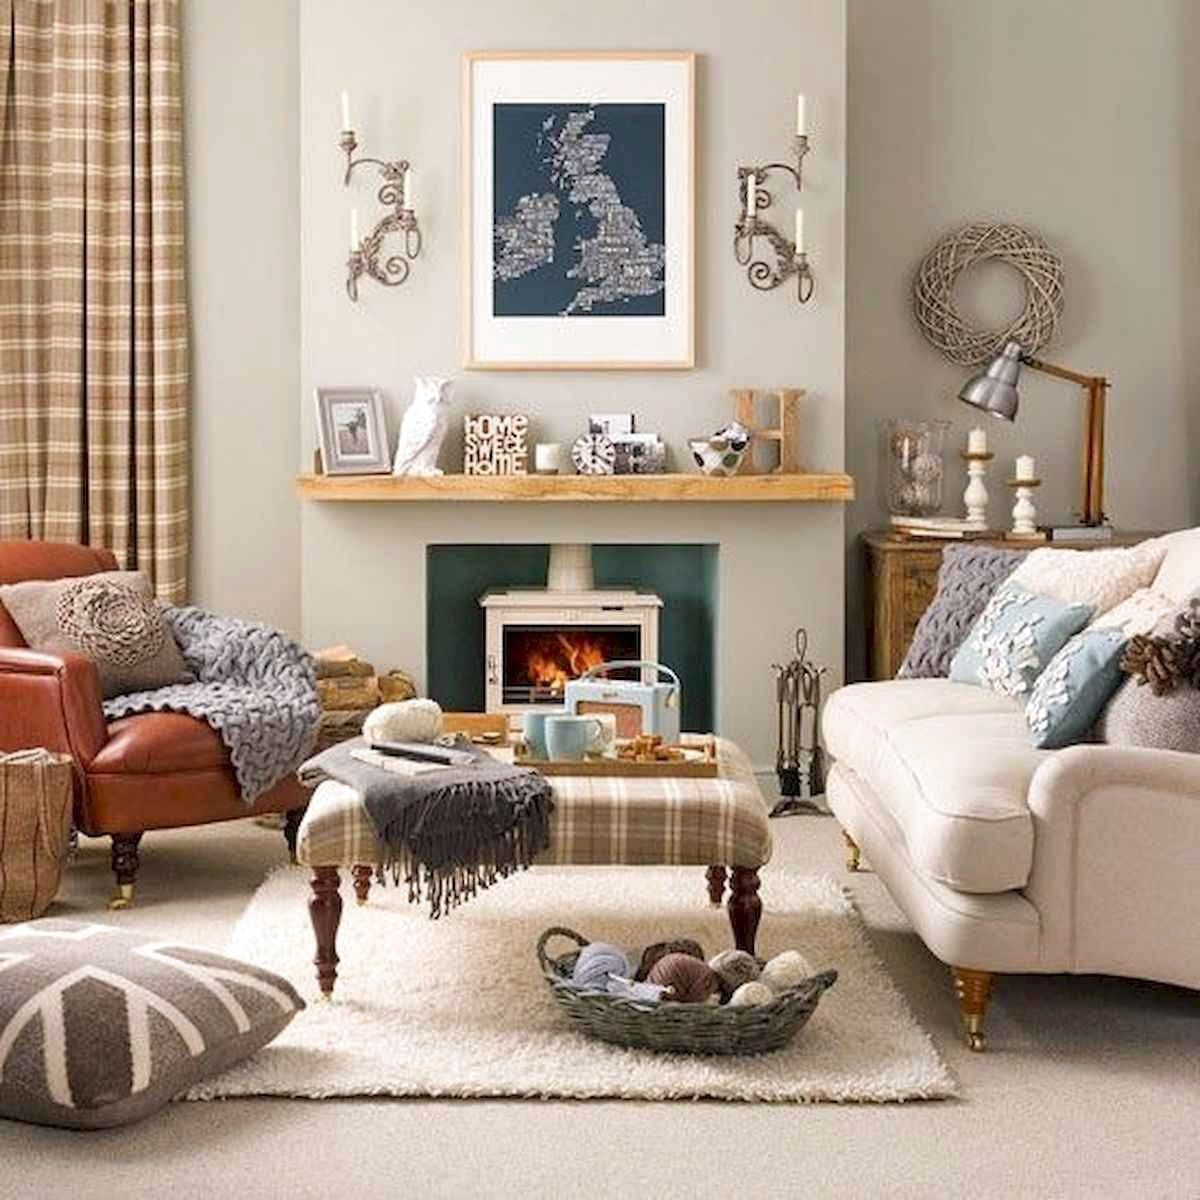 Favorite Rug Living Room Farmhouse Decor Ideas Frugal Living French Country Decorating Living Room Country Living Room Design Cosy Living Room